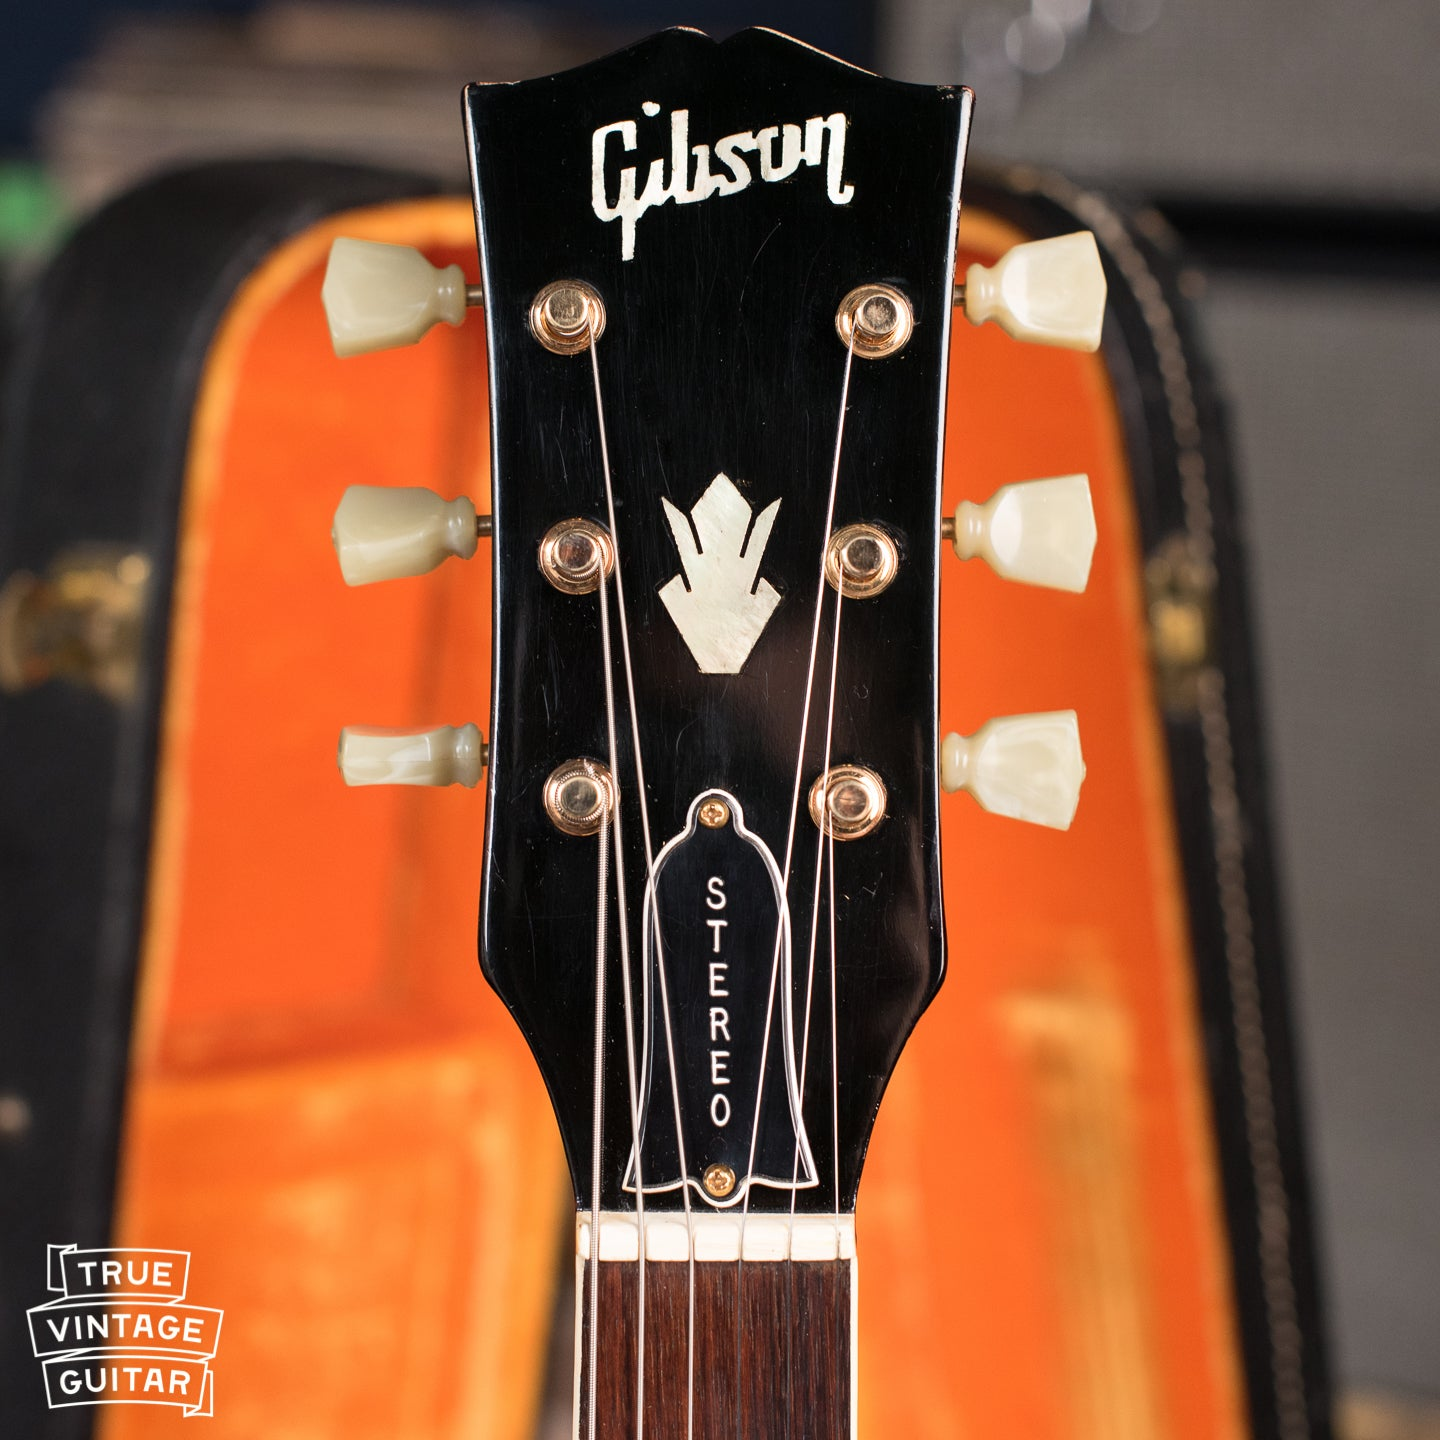 headstock, neck, vintage Gibson ES-345 TDC Cherry electric guitar Stereo